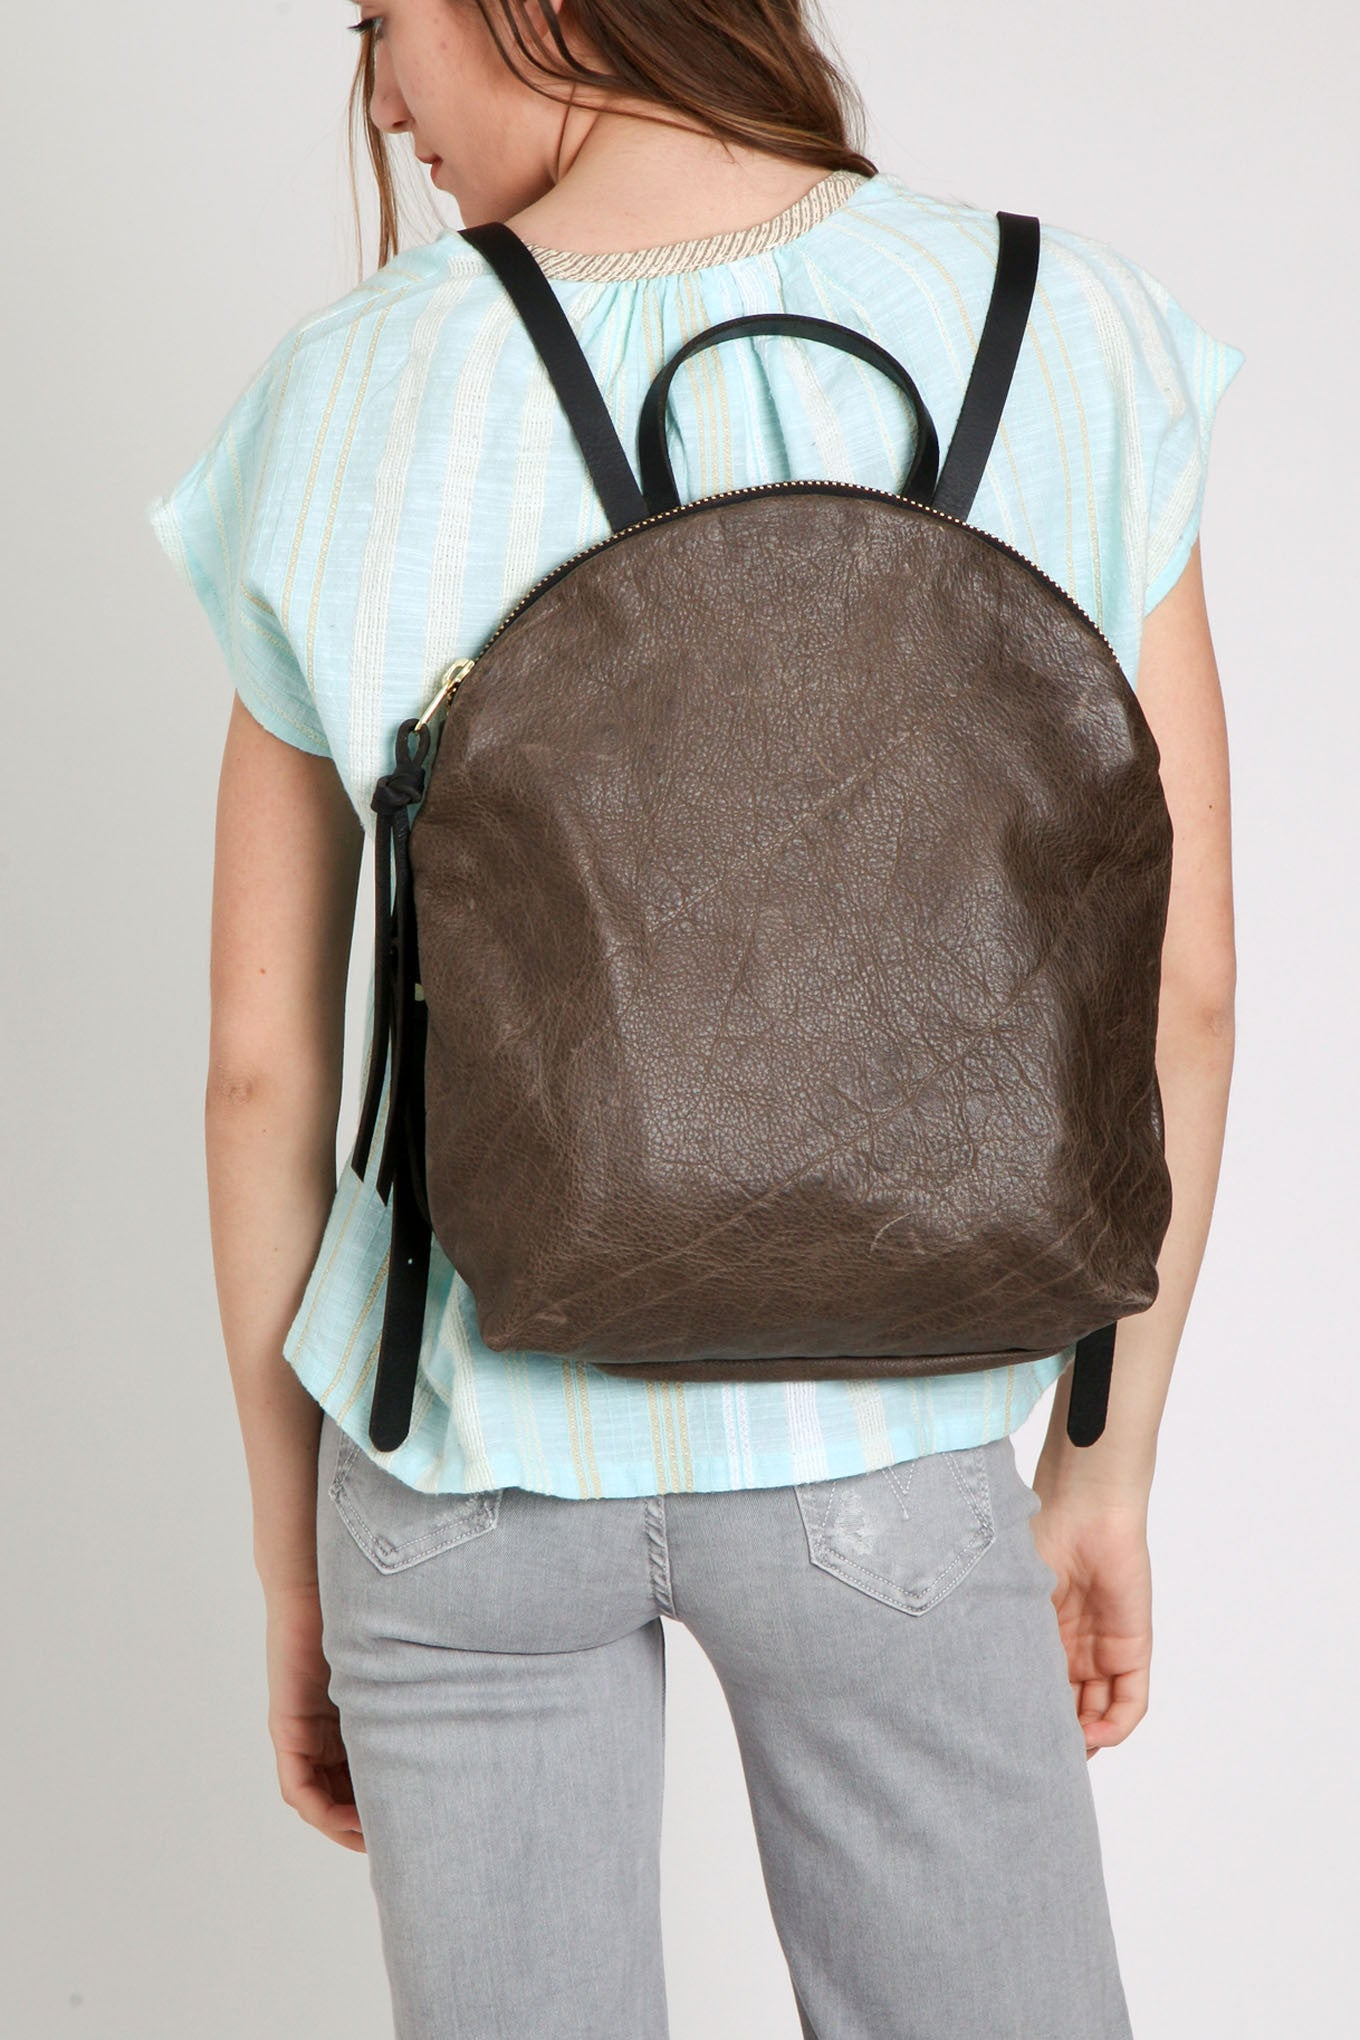 Eleven Thirty Backpack